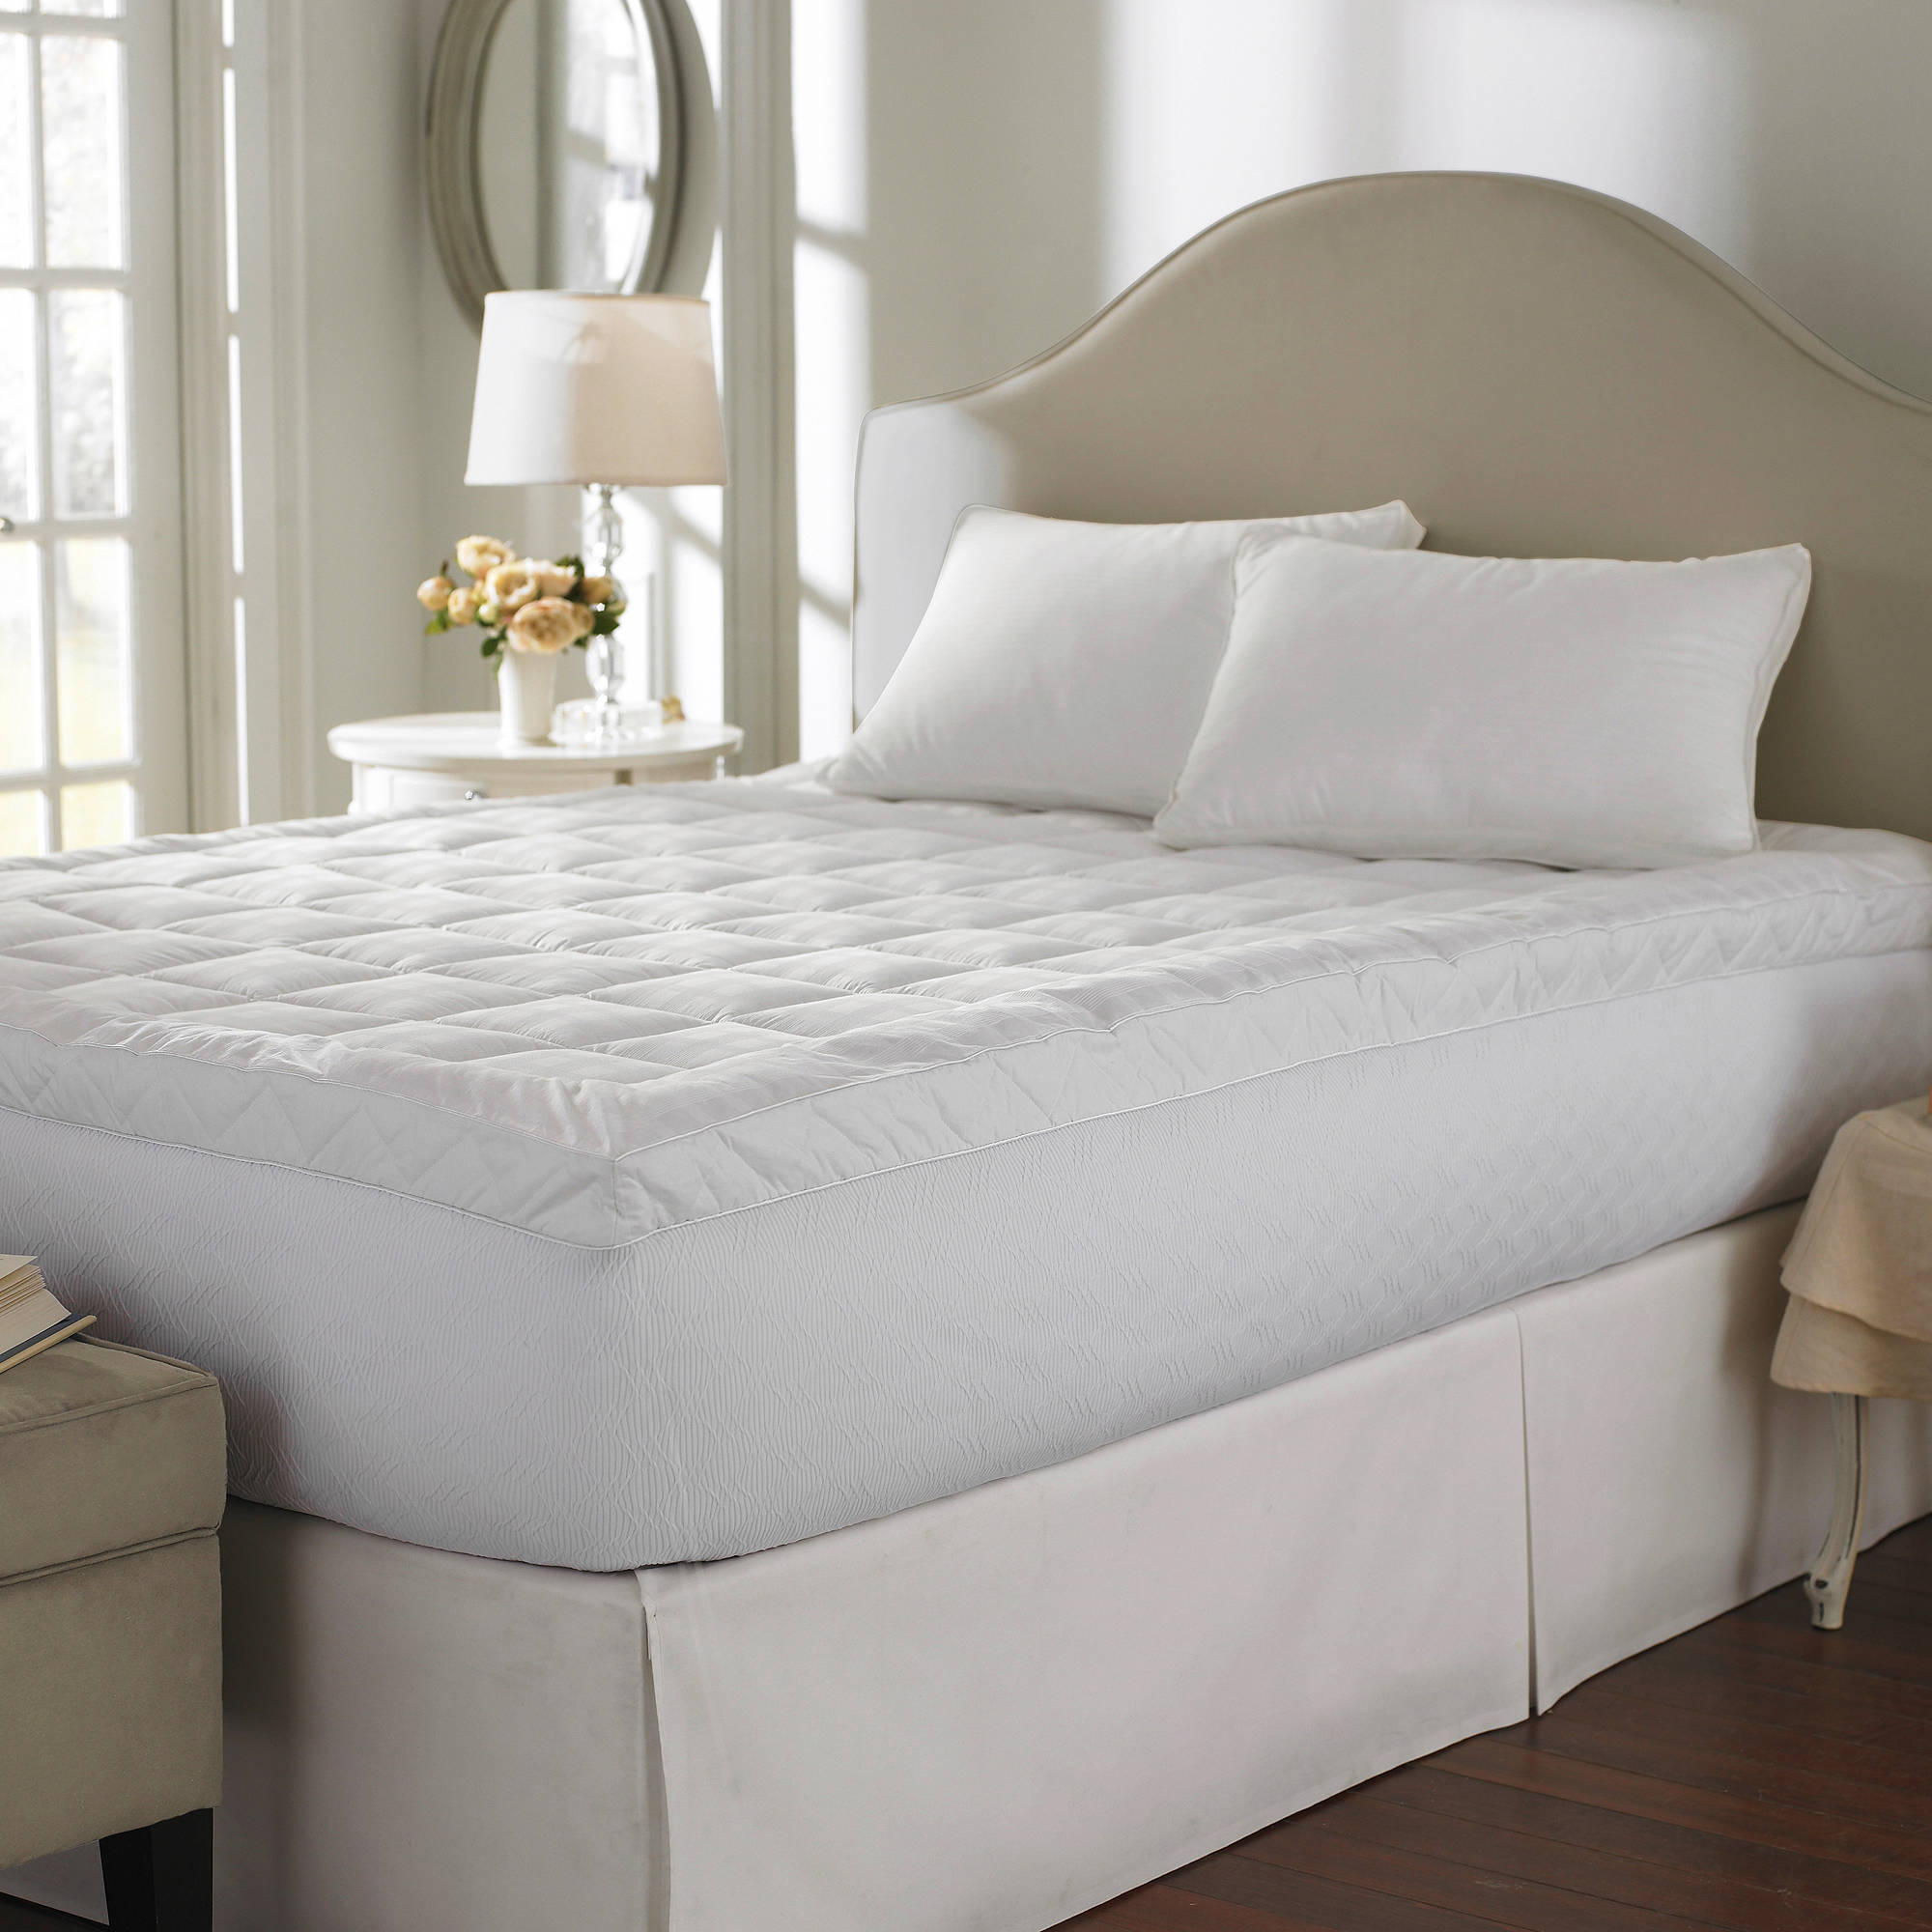 costco bed topper bedding sets costco novaform comfortluxe gel memory foam 3 mattress - Costco Mattress Topper